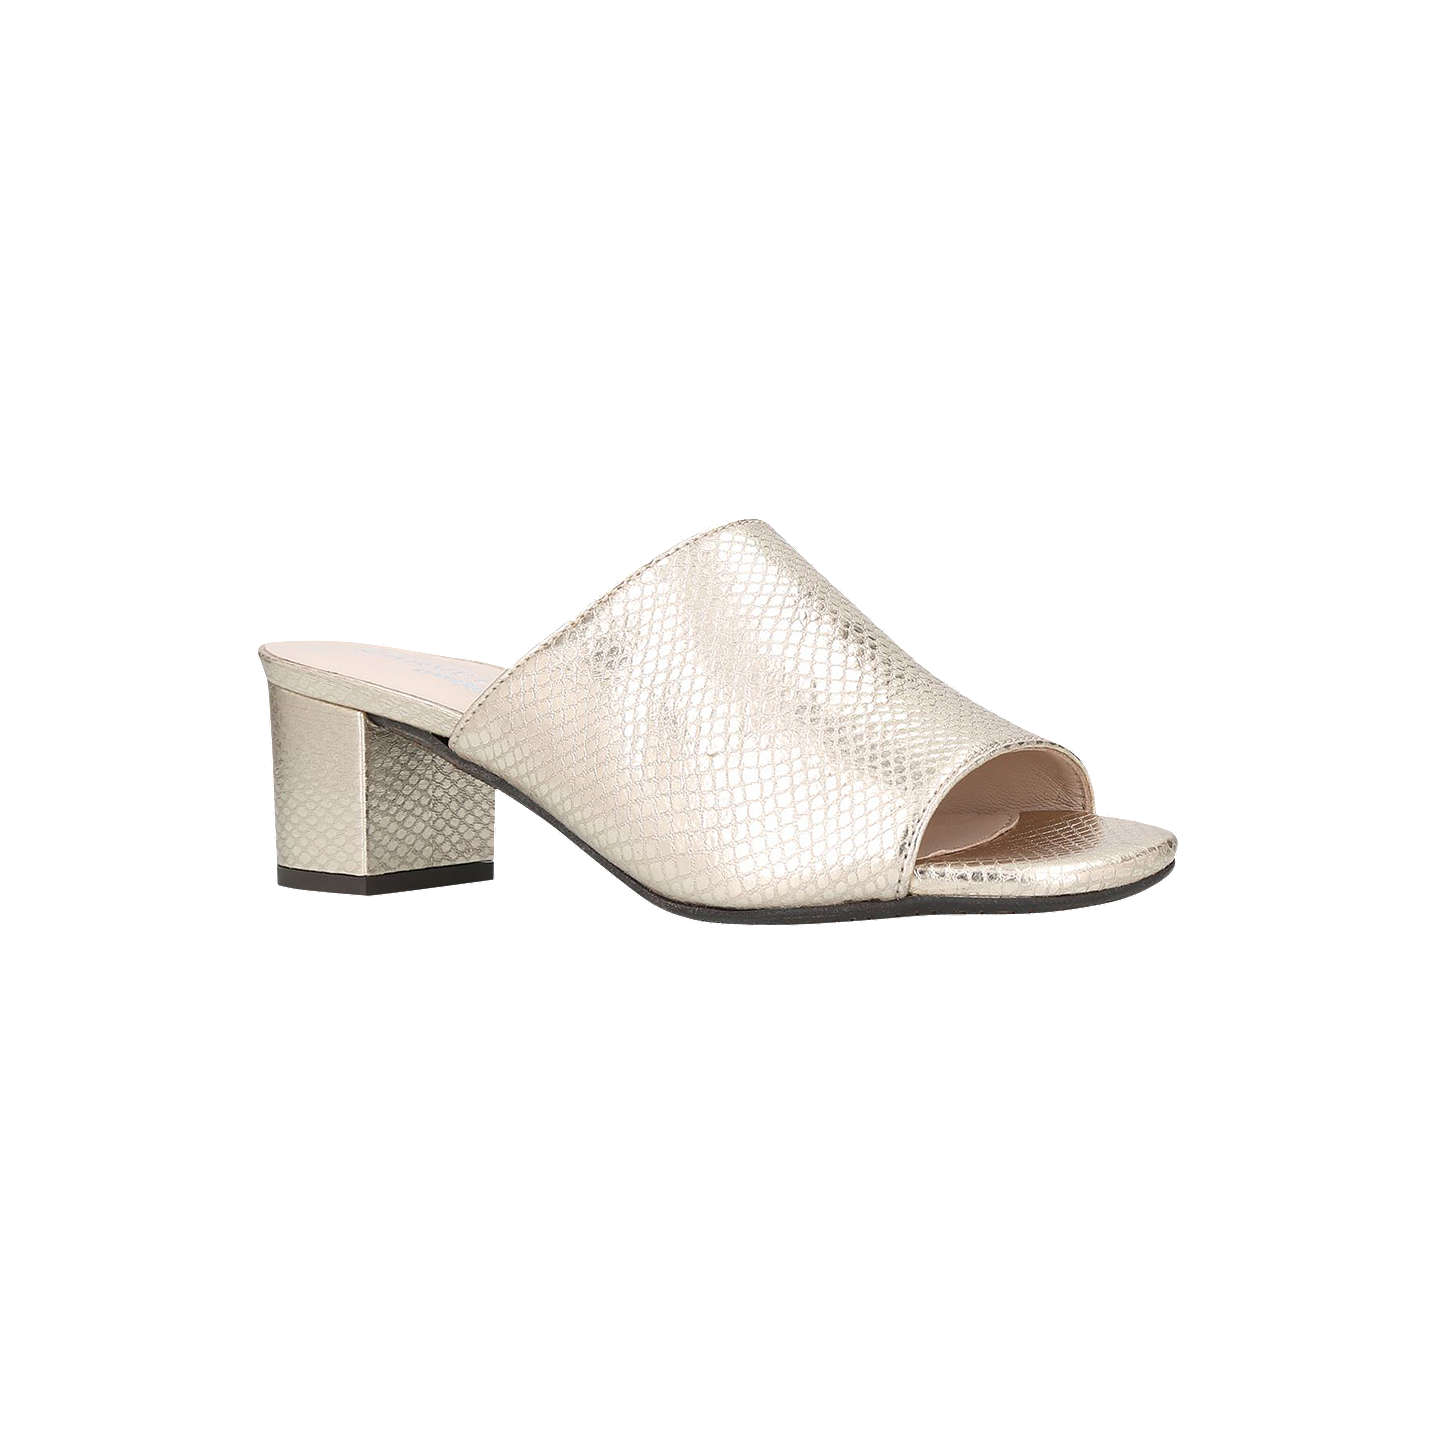 BuyCarvela Comfort Abby Block Heel Sandals, Gold Leather, 3 Online at  johnlewis.com ...